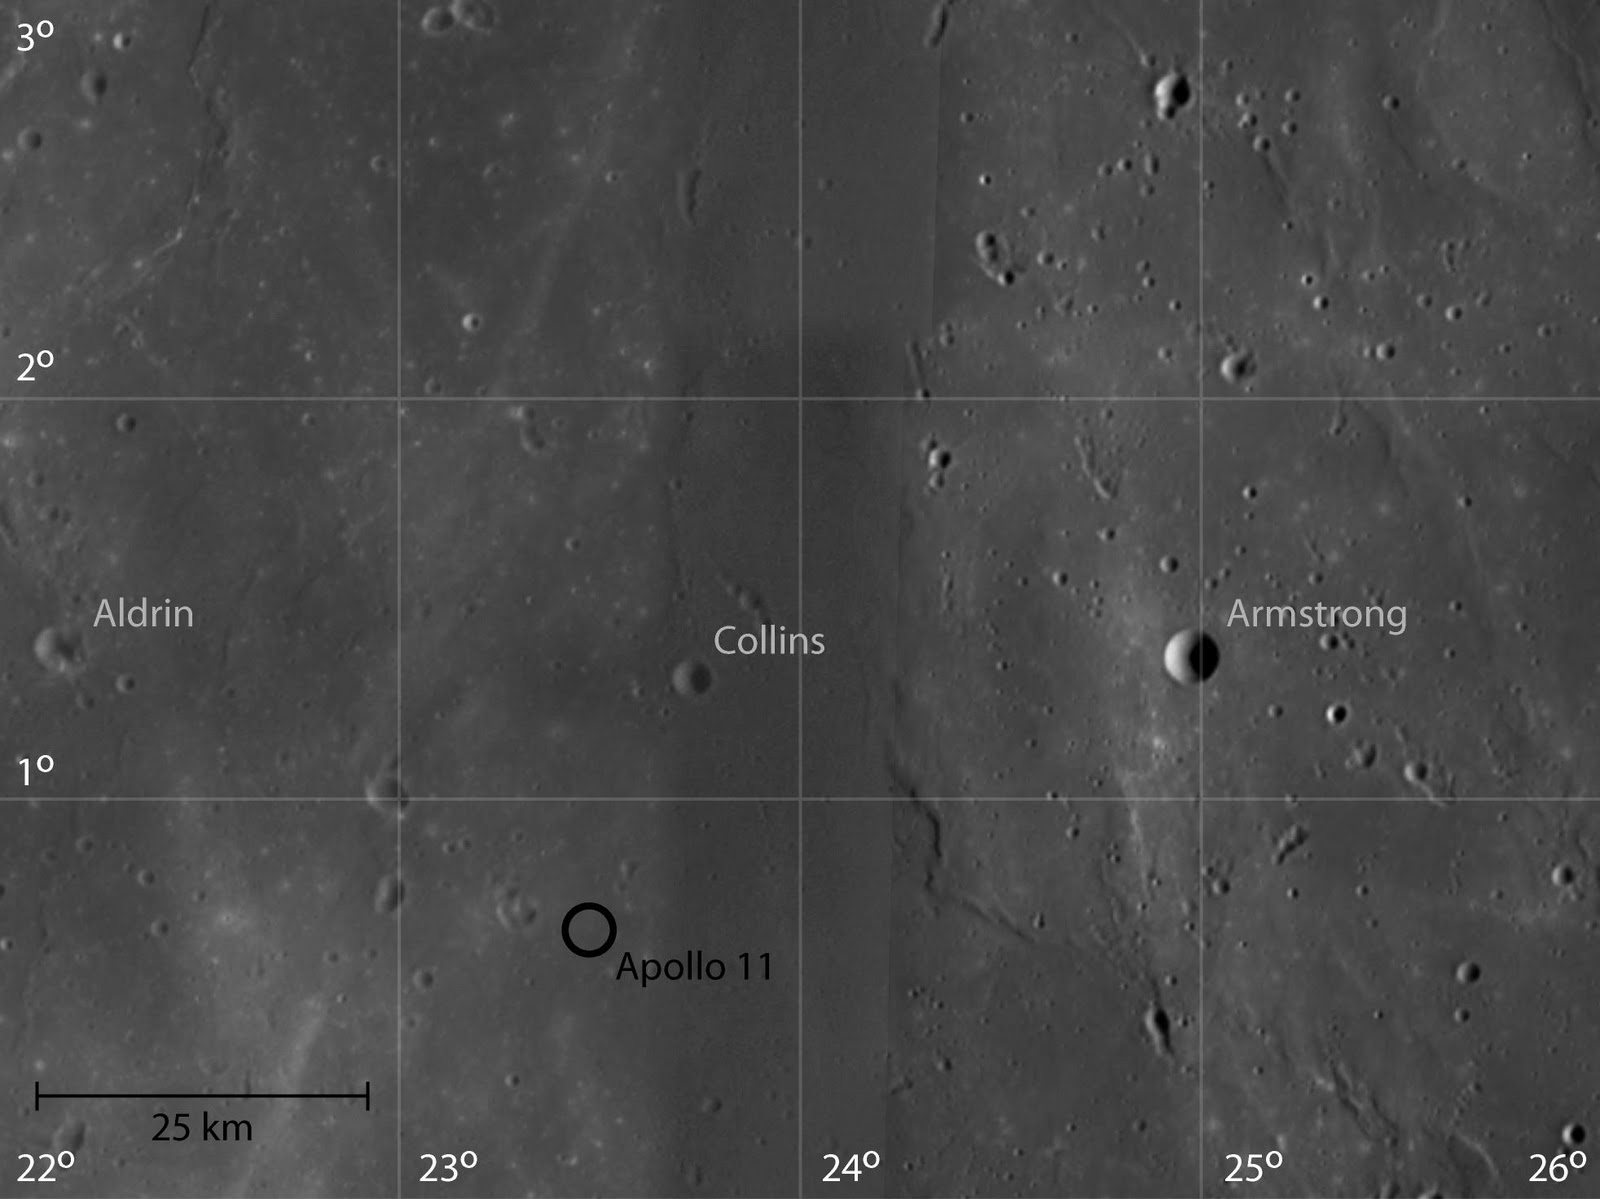 Selology: Apollo 11 Landing Site by SMART-1